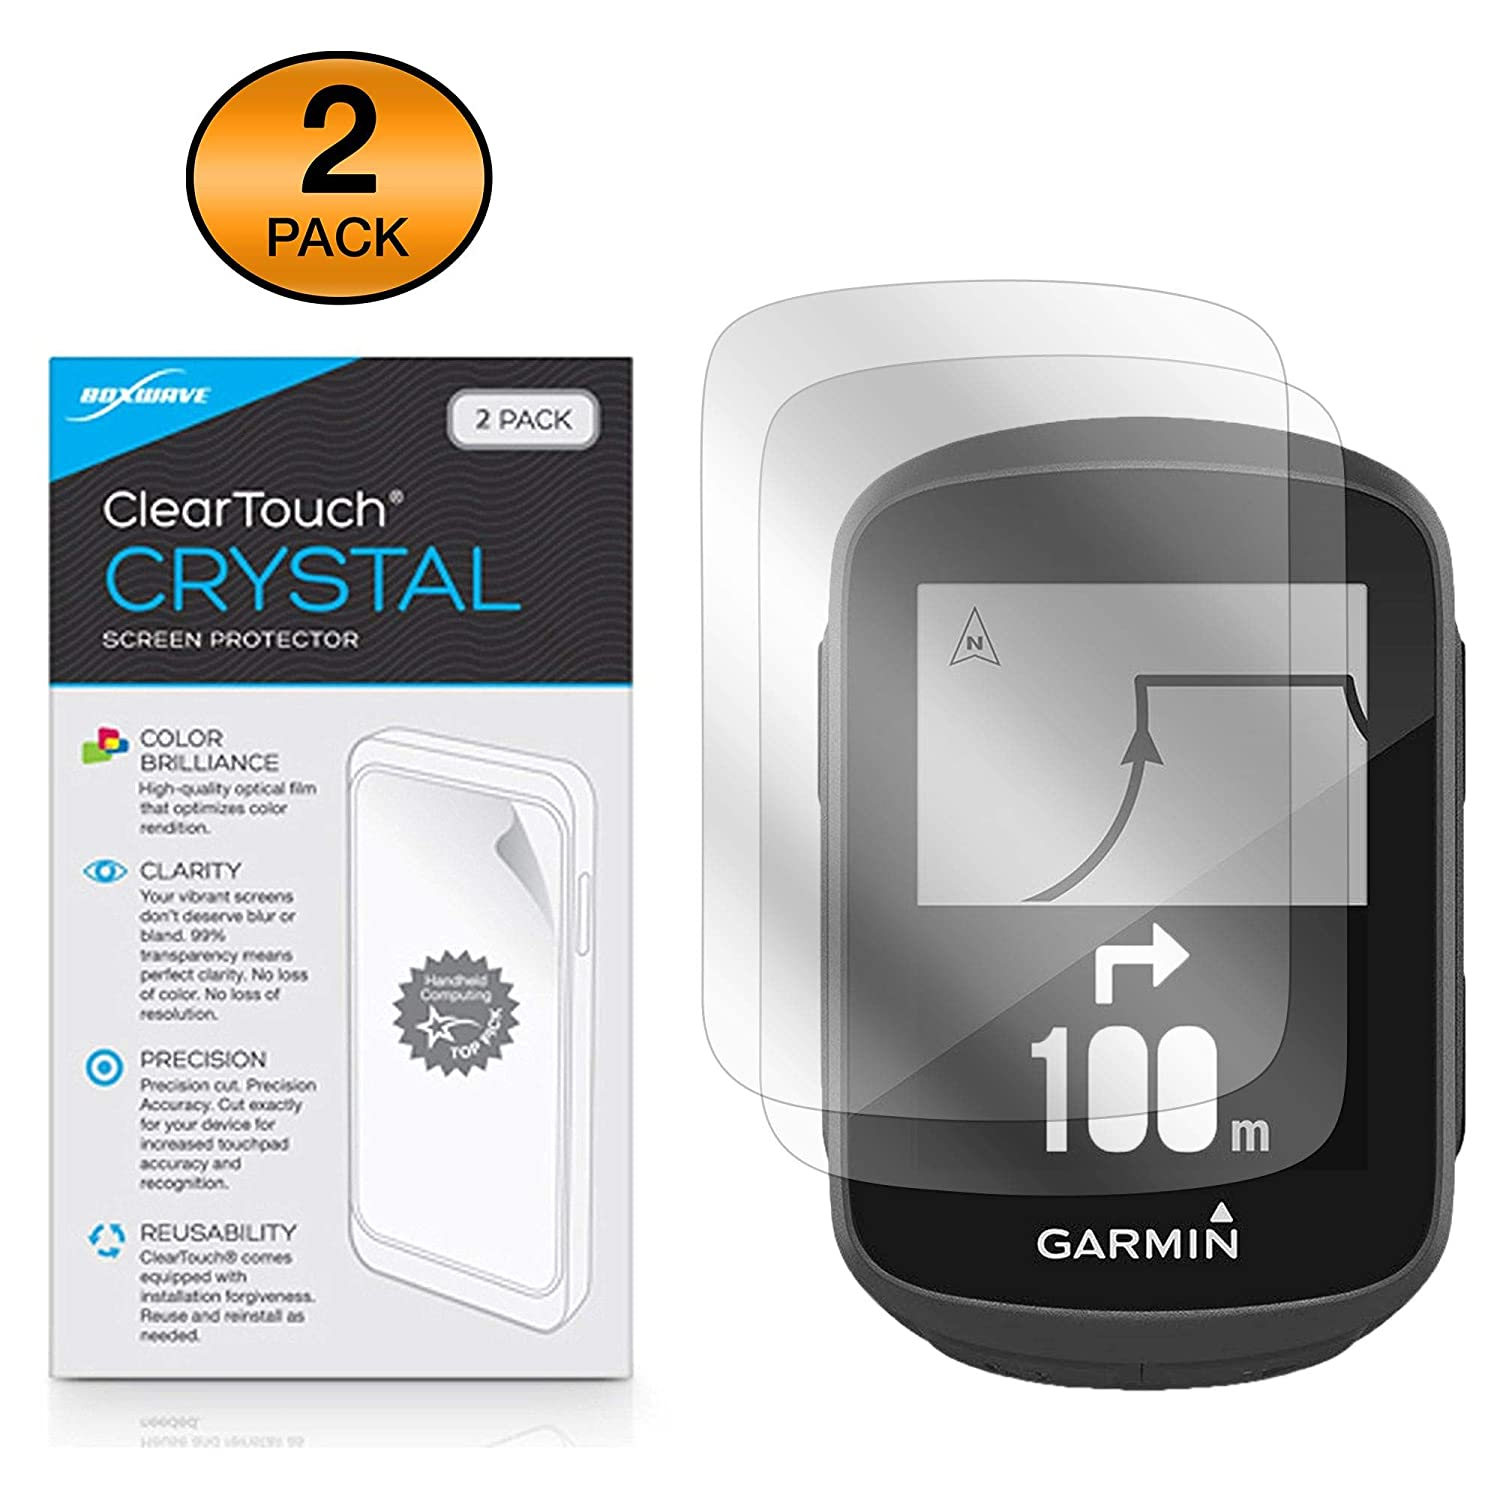 2-Pack ClearTouch Crystal BoxWave Garmin Edge 130 Screen Protector, HD Film Skin Shields from Scratches for Garmin Edge 130